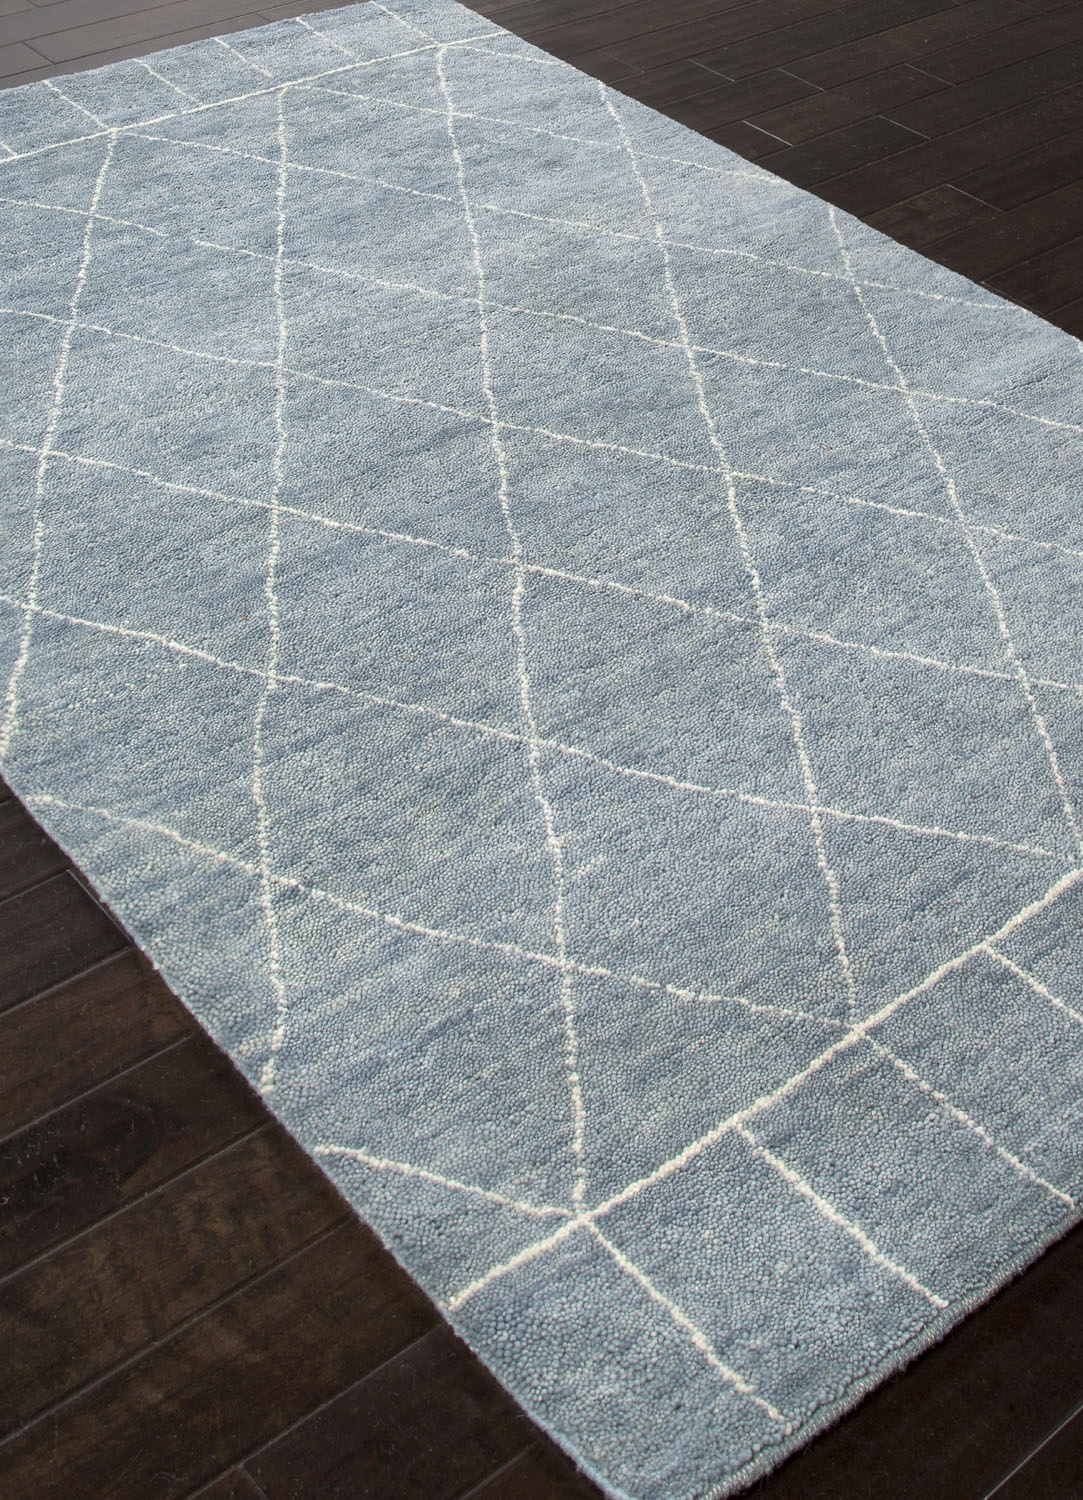 Jaipur Nostalgia Ns04 Pastel Blue And Antique White Rug